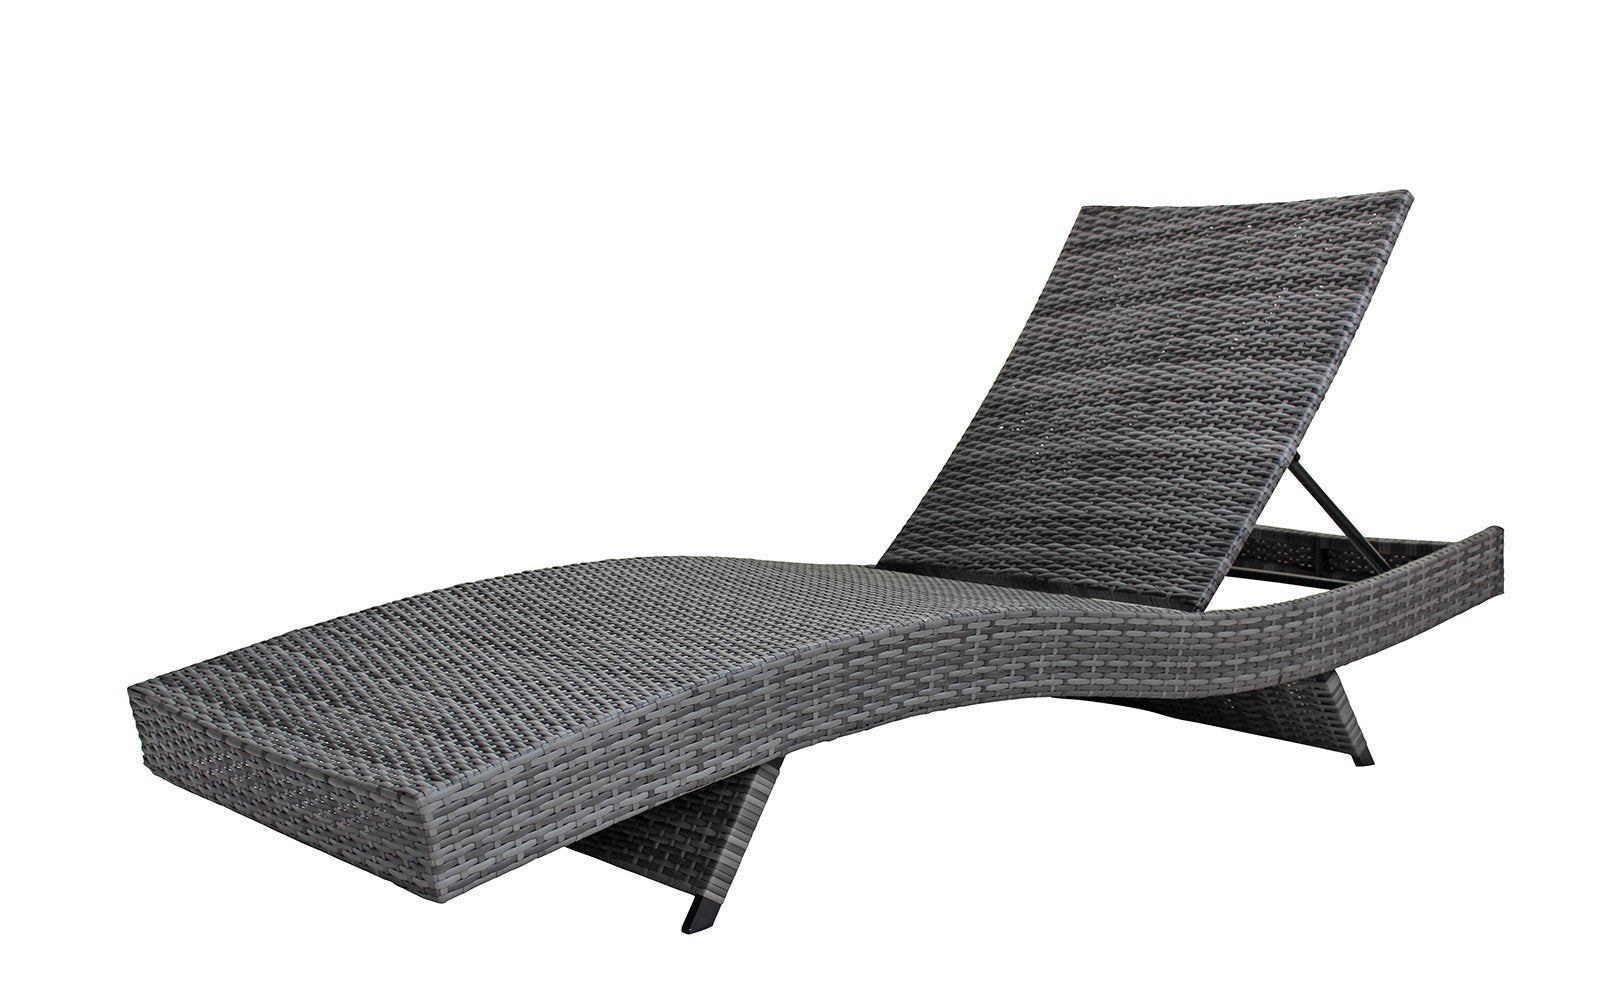 Wondrous Marina Set Of 2 All Weather Modern Outdoor Patio Chaise Spiritservingveterans Wood Chair Design Ideas Spiritservingveteransorg